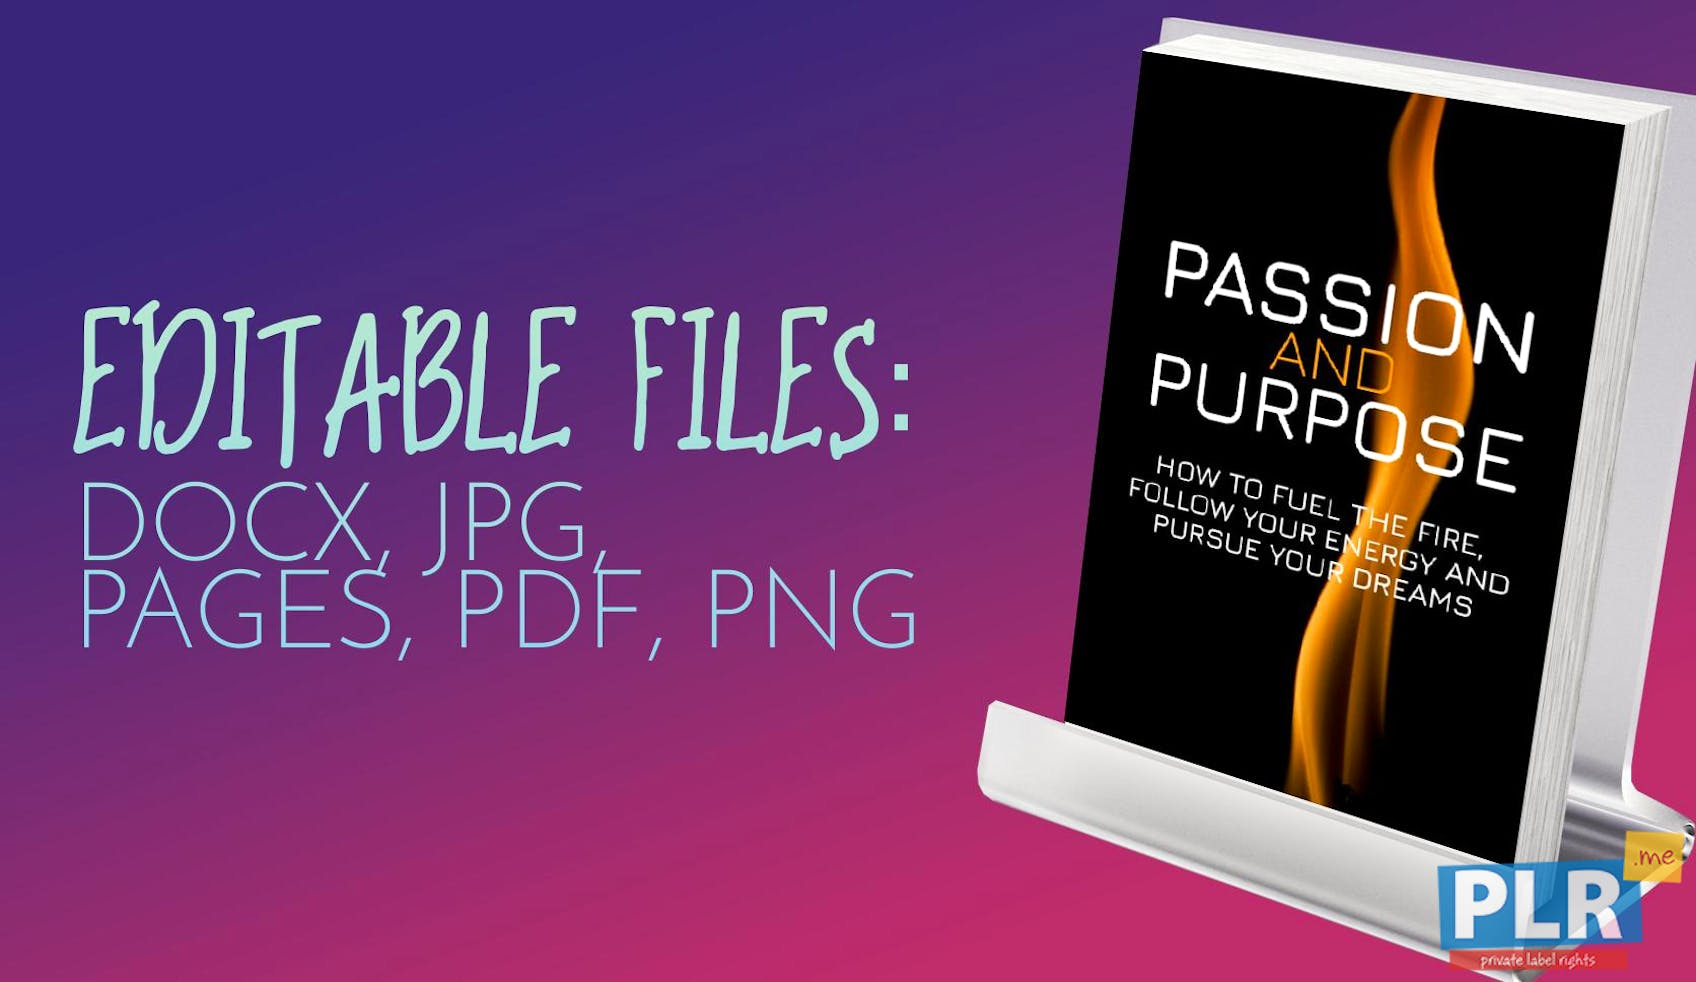 Passion And Purpose: How To Fuel The Fire, Follow Your Energy And Pursue Your Dreams